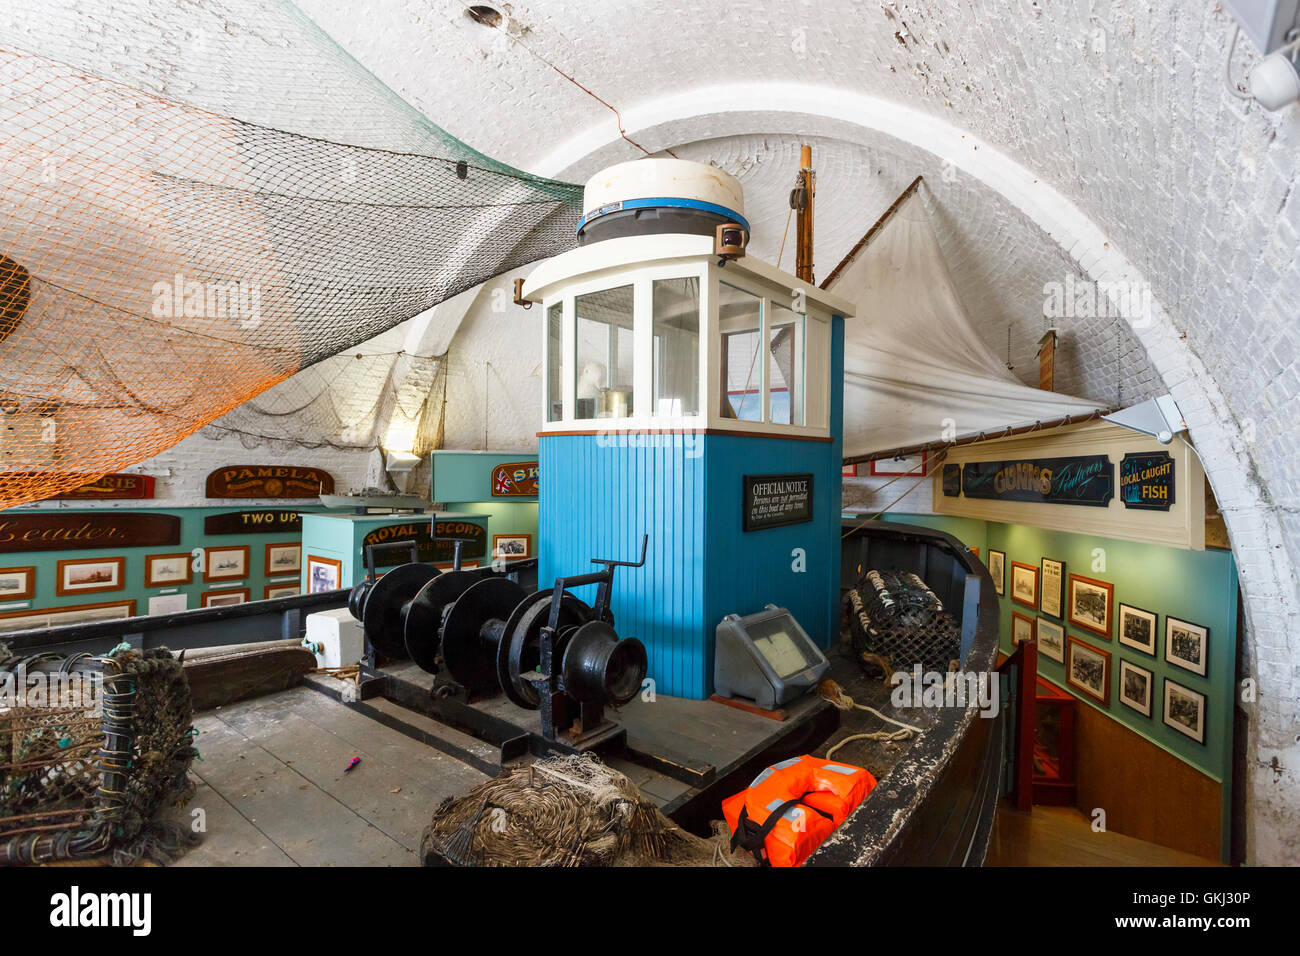 Old fashioned fishing boat on display as an exhibit in the Brighton Fishing Museum, Brighton, East Sussex, UK - Stock Image